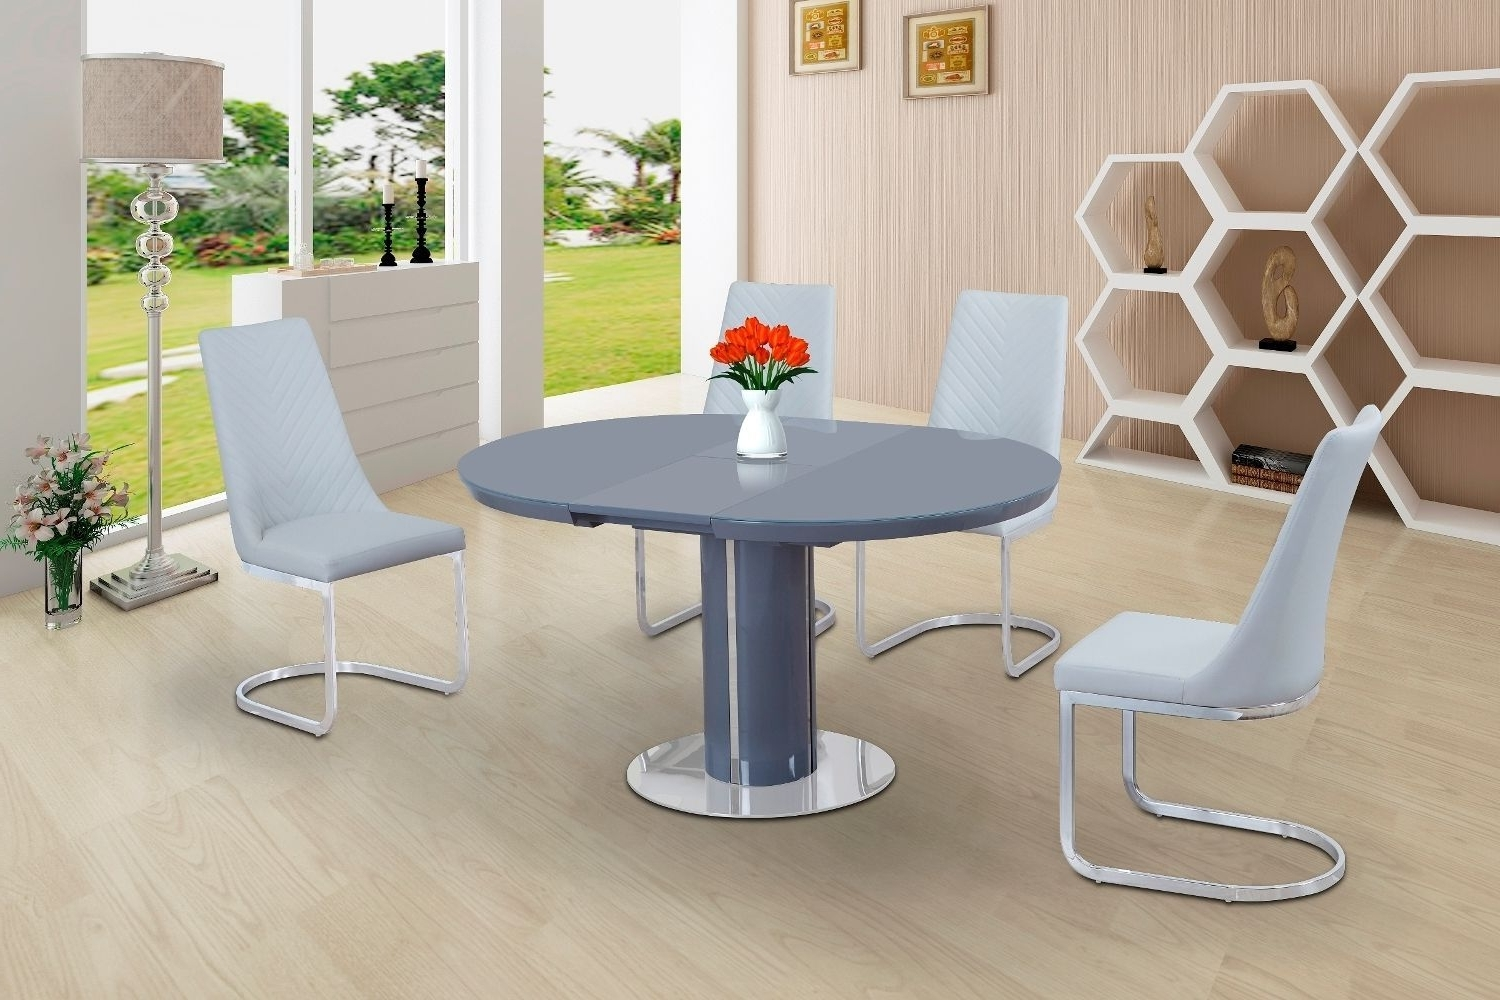 Round Extendable Dining Tables And Chairs In Trendy Eclipse Round Oval Gloss & Glass Extending 110 To 145 Cm Dining (View 11 of 25)